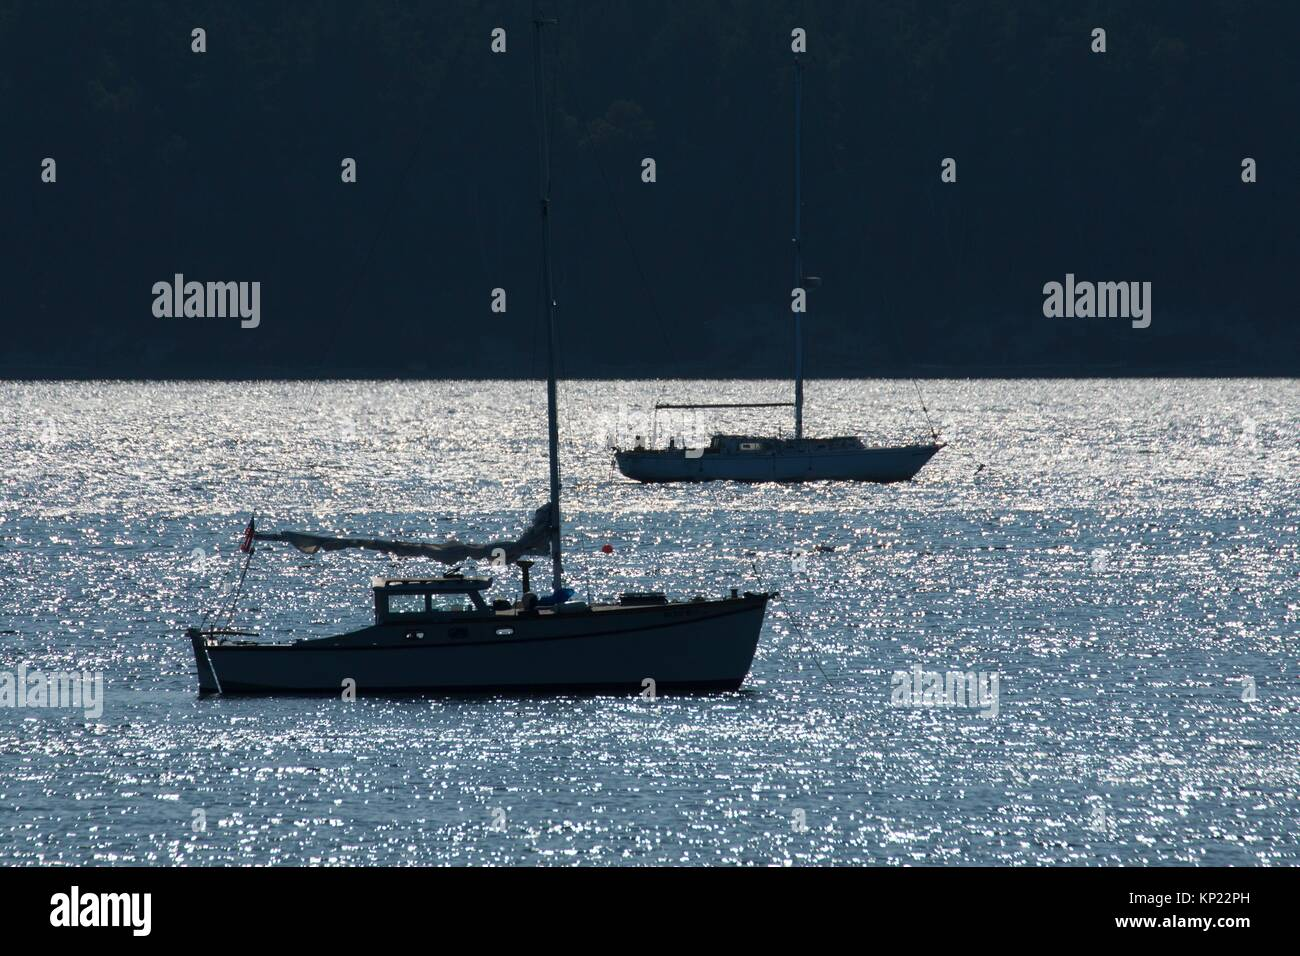 Moored sailboat silhouette, Mystery Bay State Park, Washington. - Stock Image